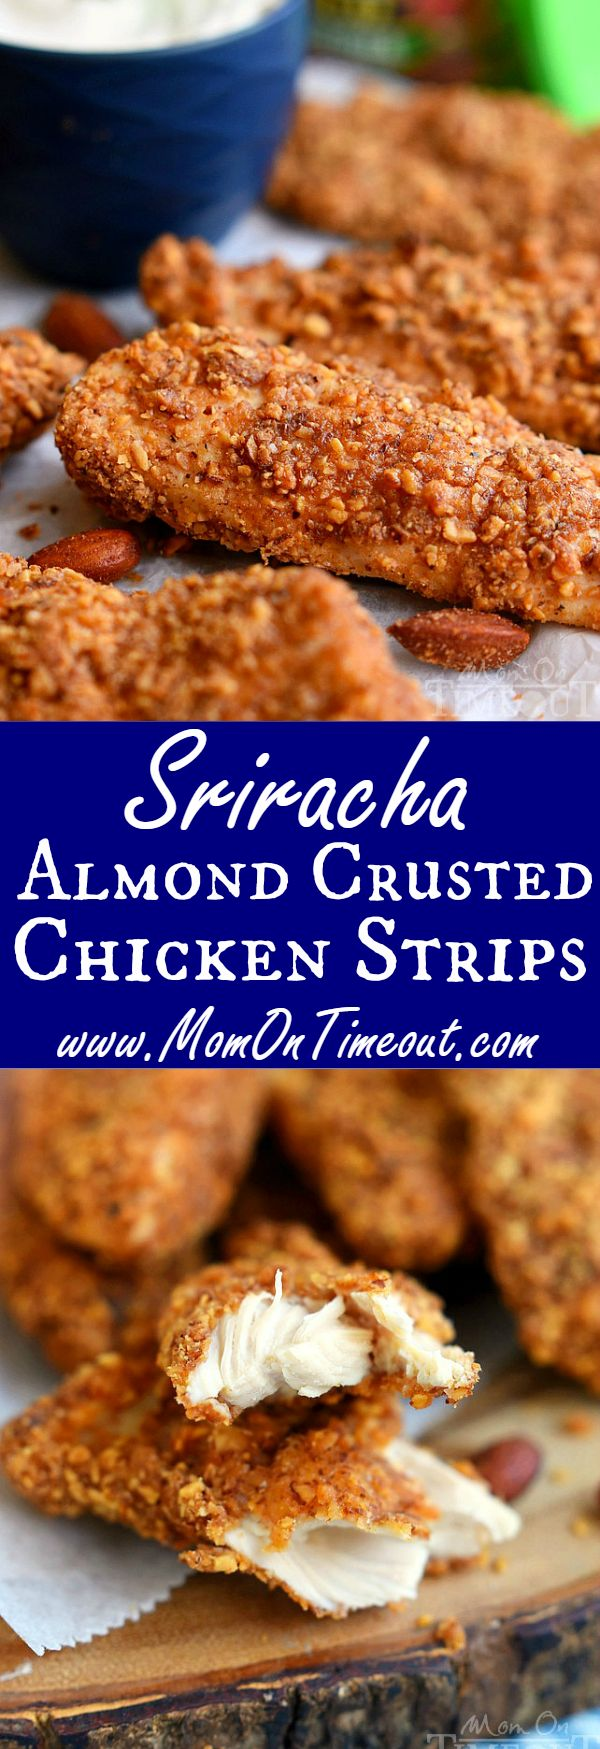 These Sriracha Almond Crusted Chicken Strips are the perfect recipe to spice things up for dinner tonight!